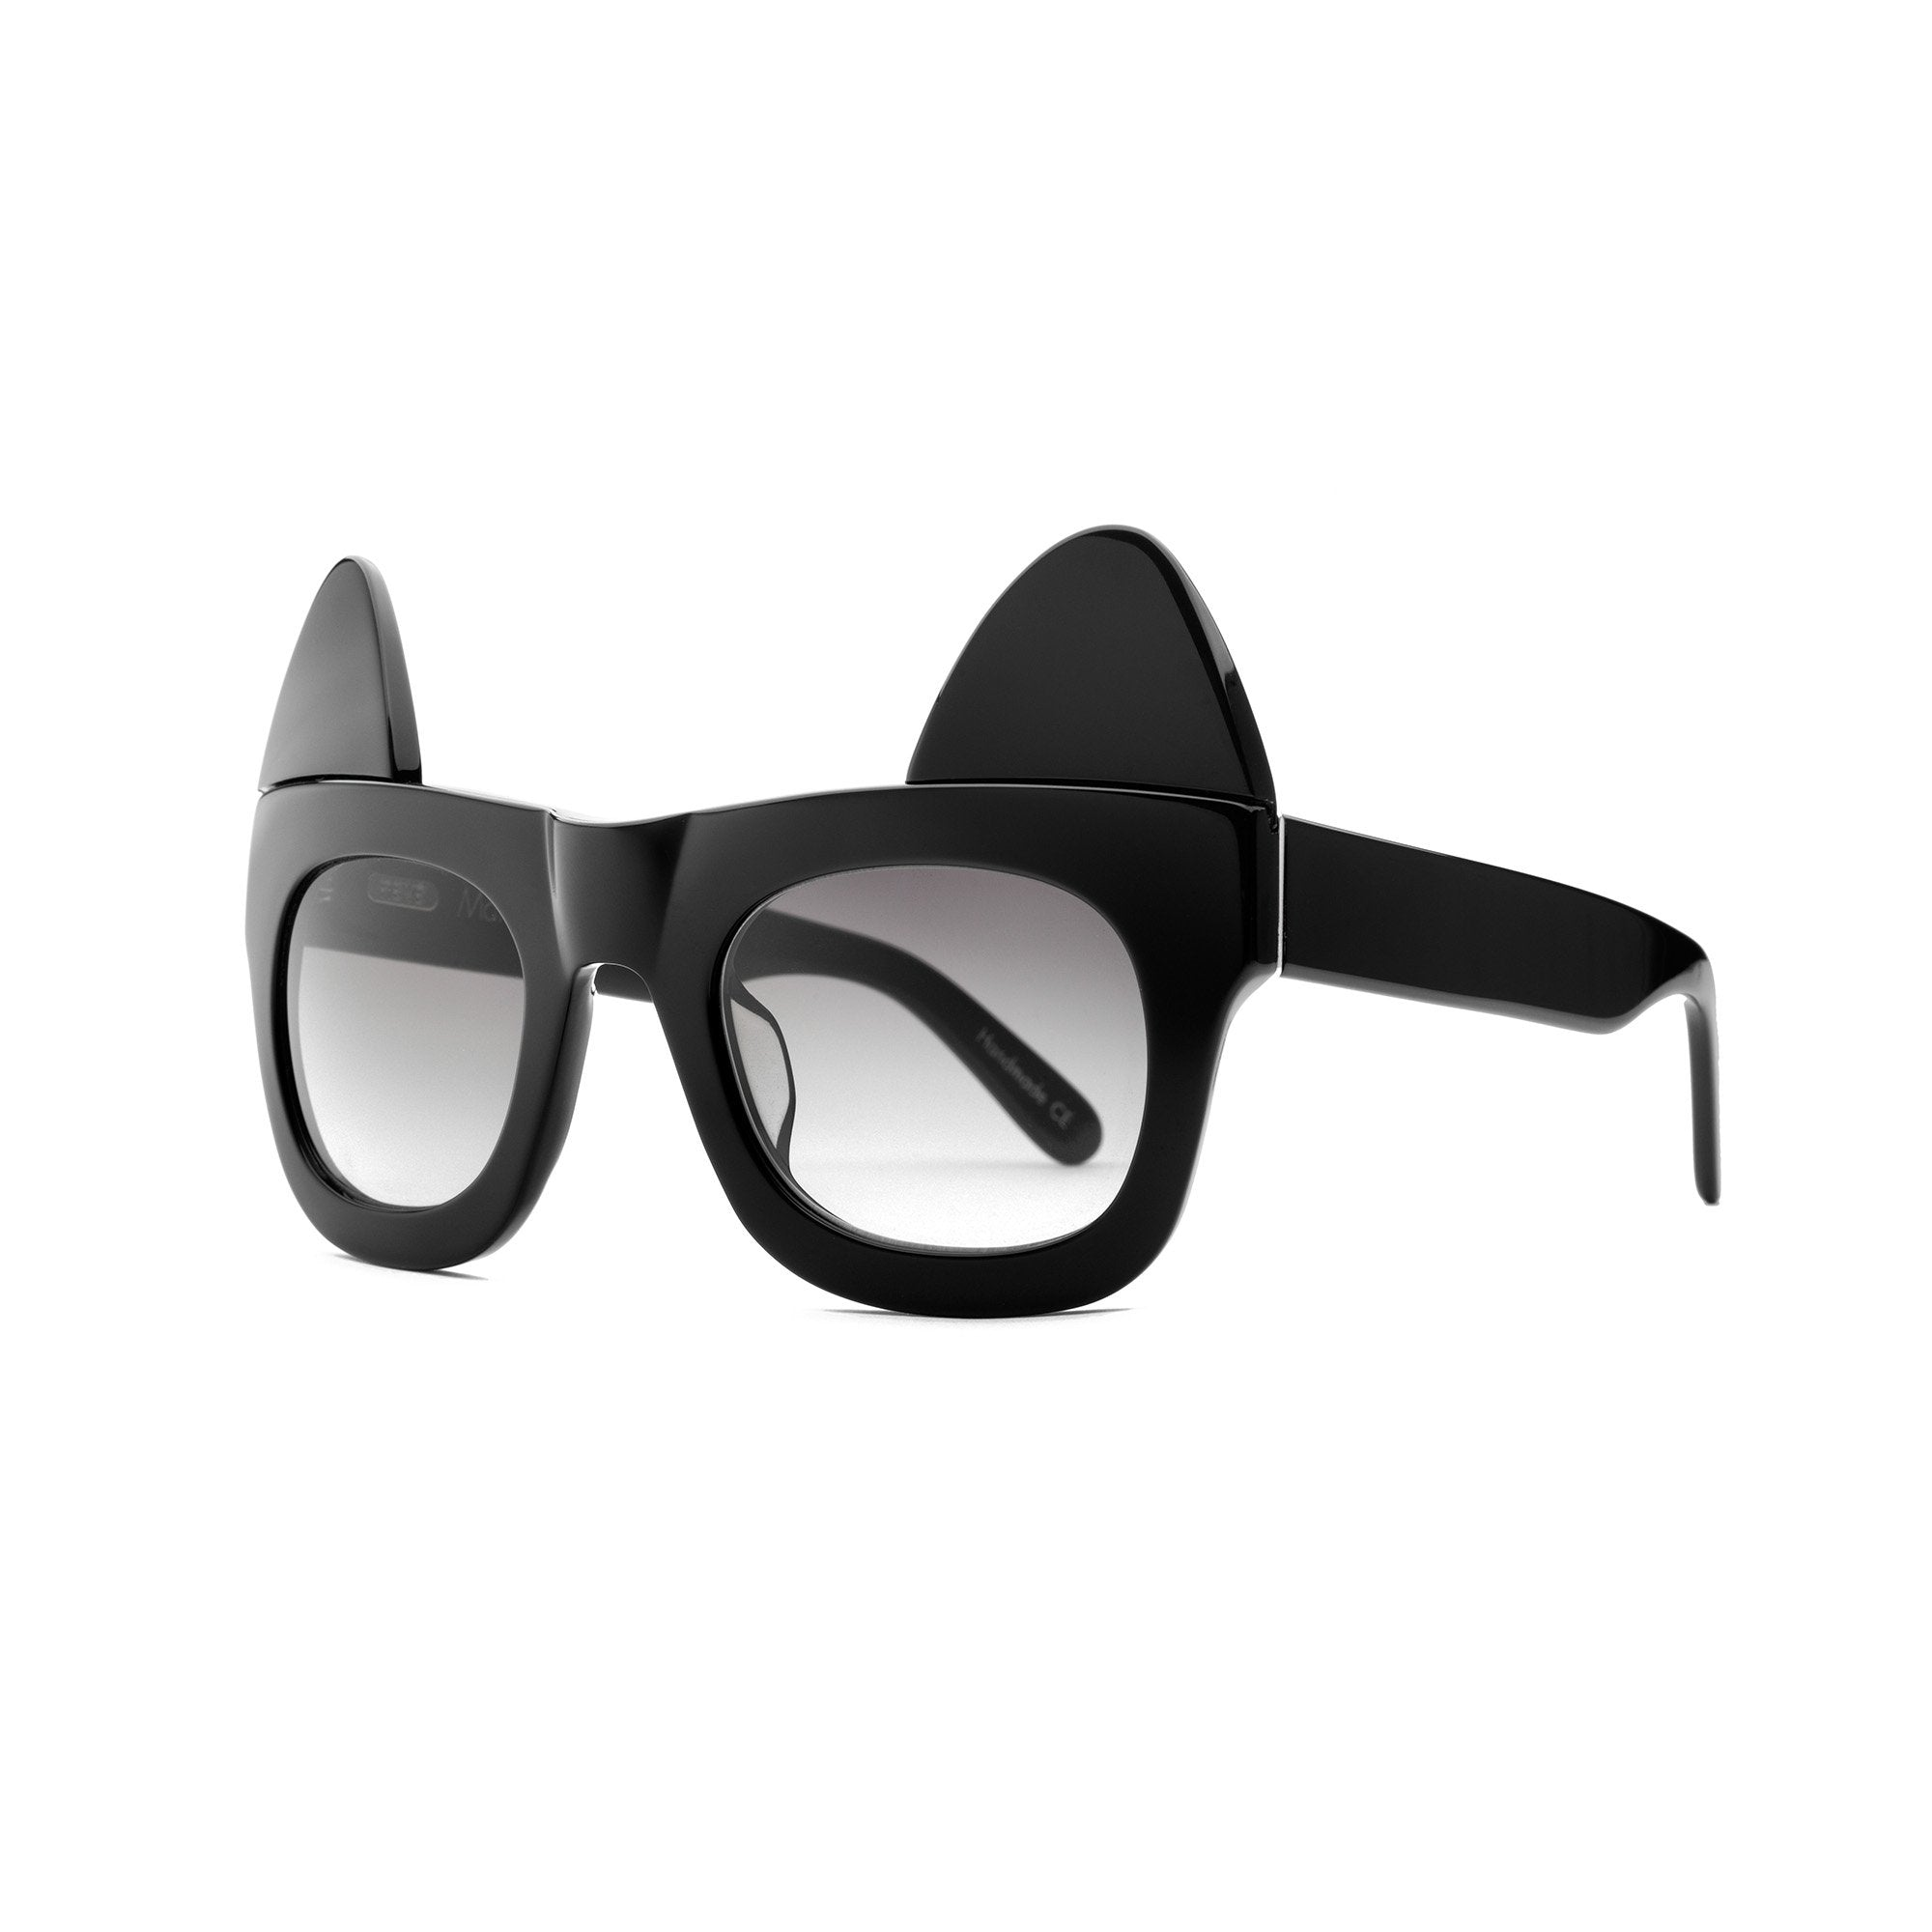 REVE by RENE make me meow sunglasses